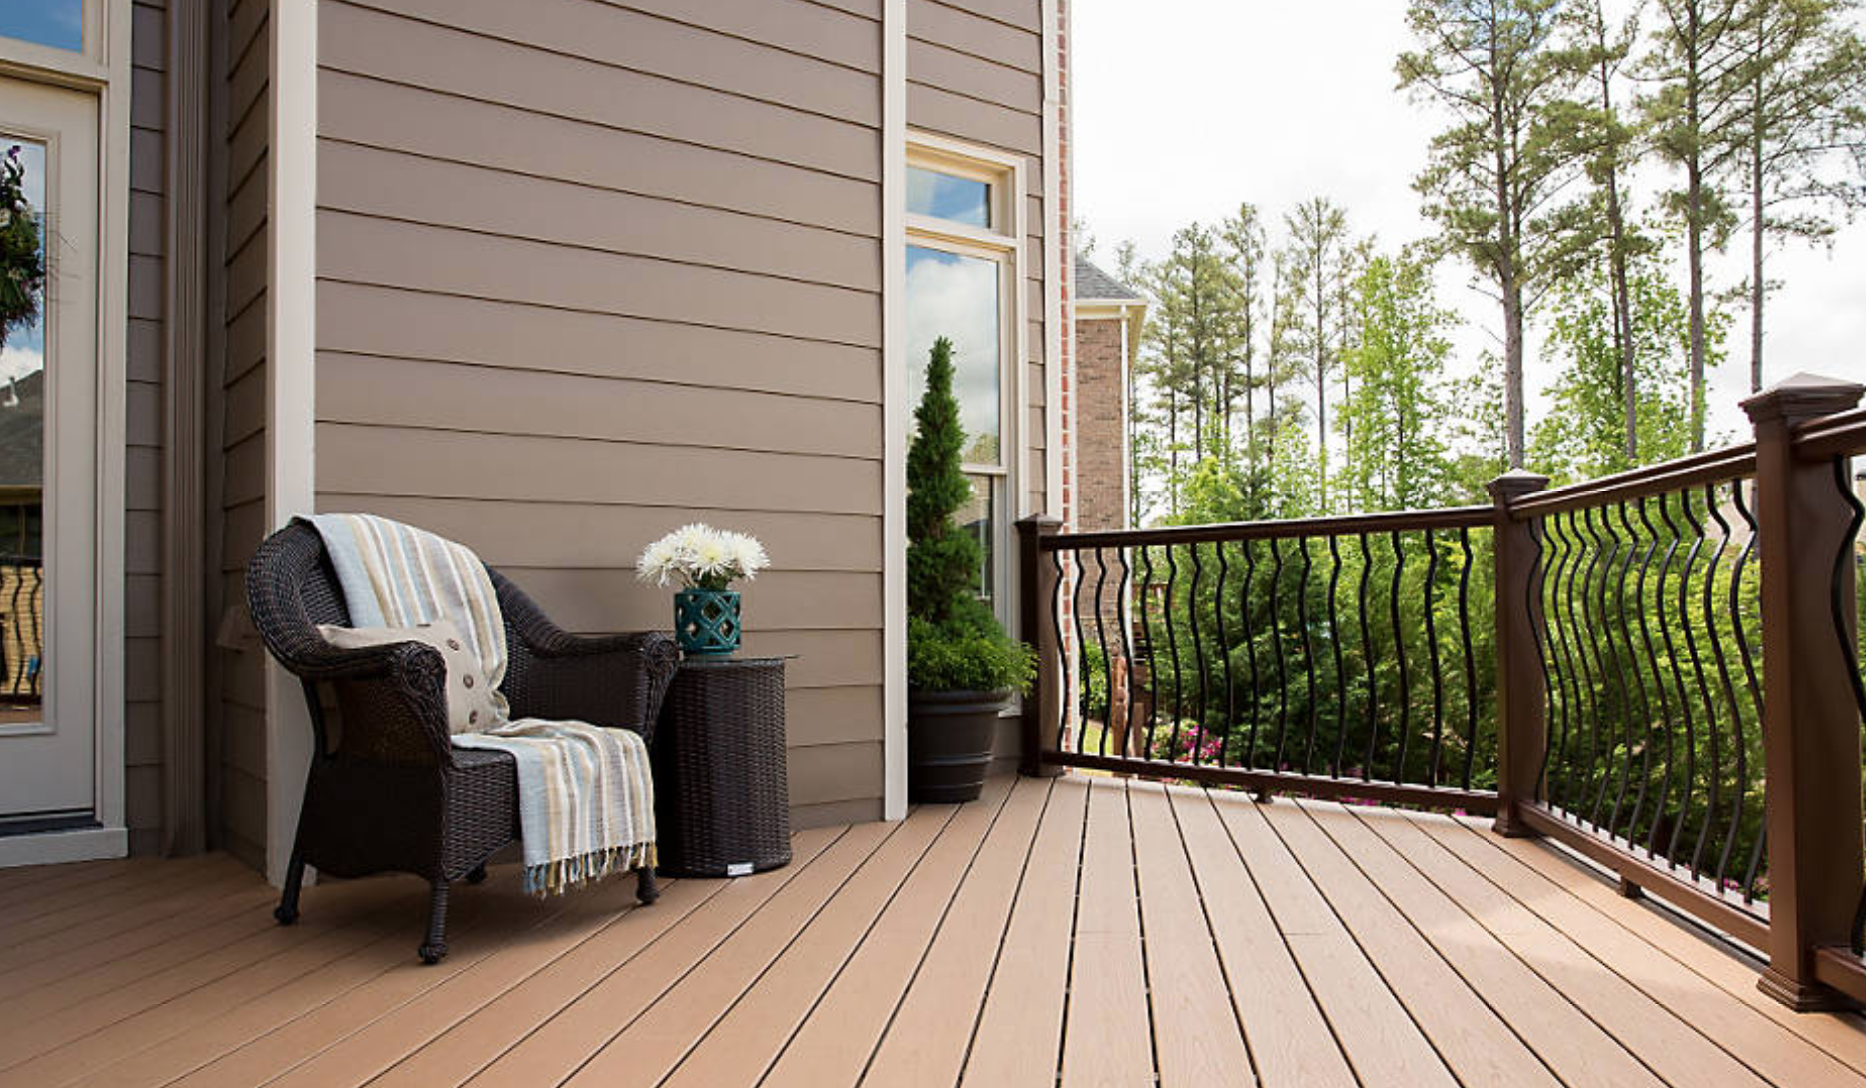 Trex decking materials are a popular choice for Hudson Valley landscape designs. Photo Trex.com